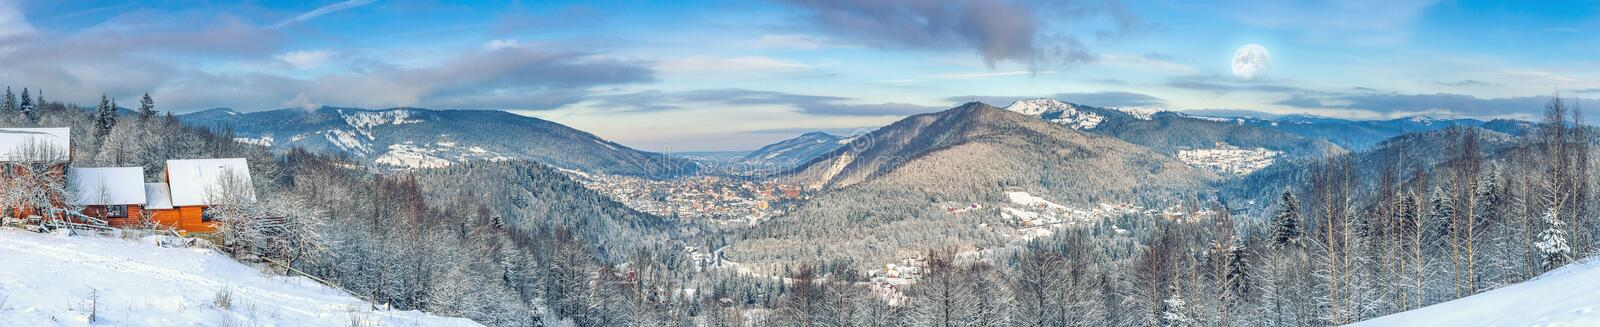 Winter landscape, panorama, banner - top view of the snowy mountain valley in the Carpathians royalty free stock photography